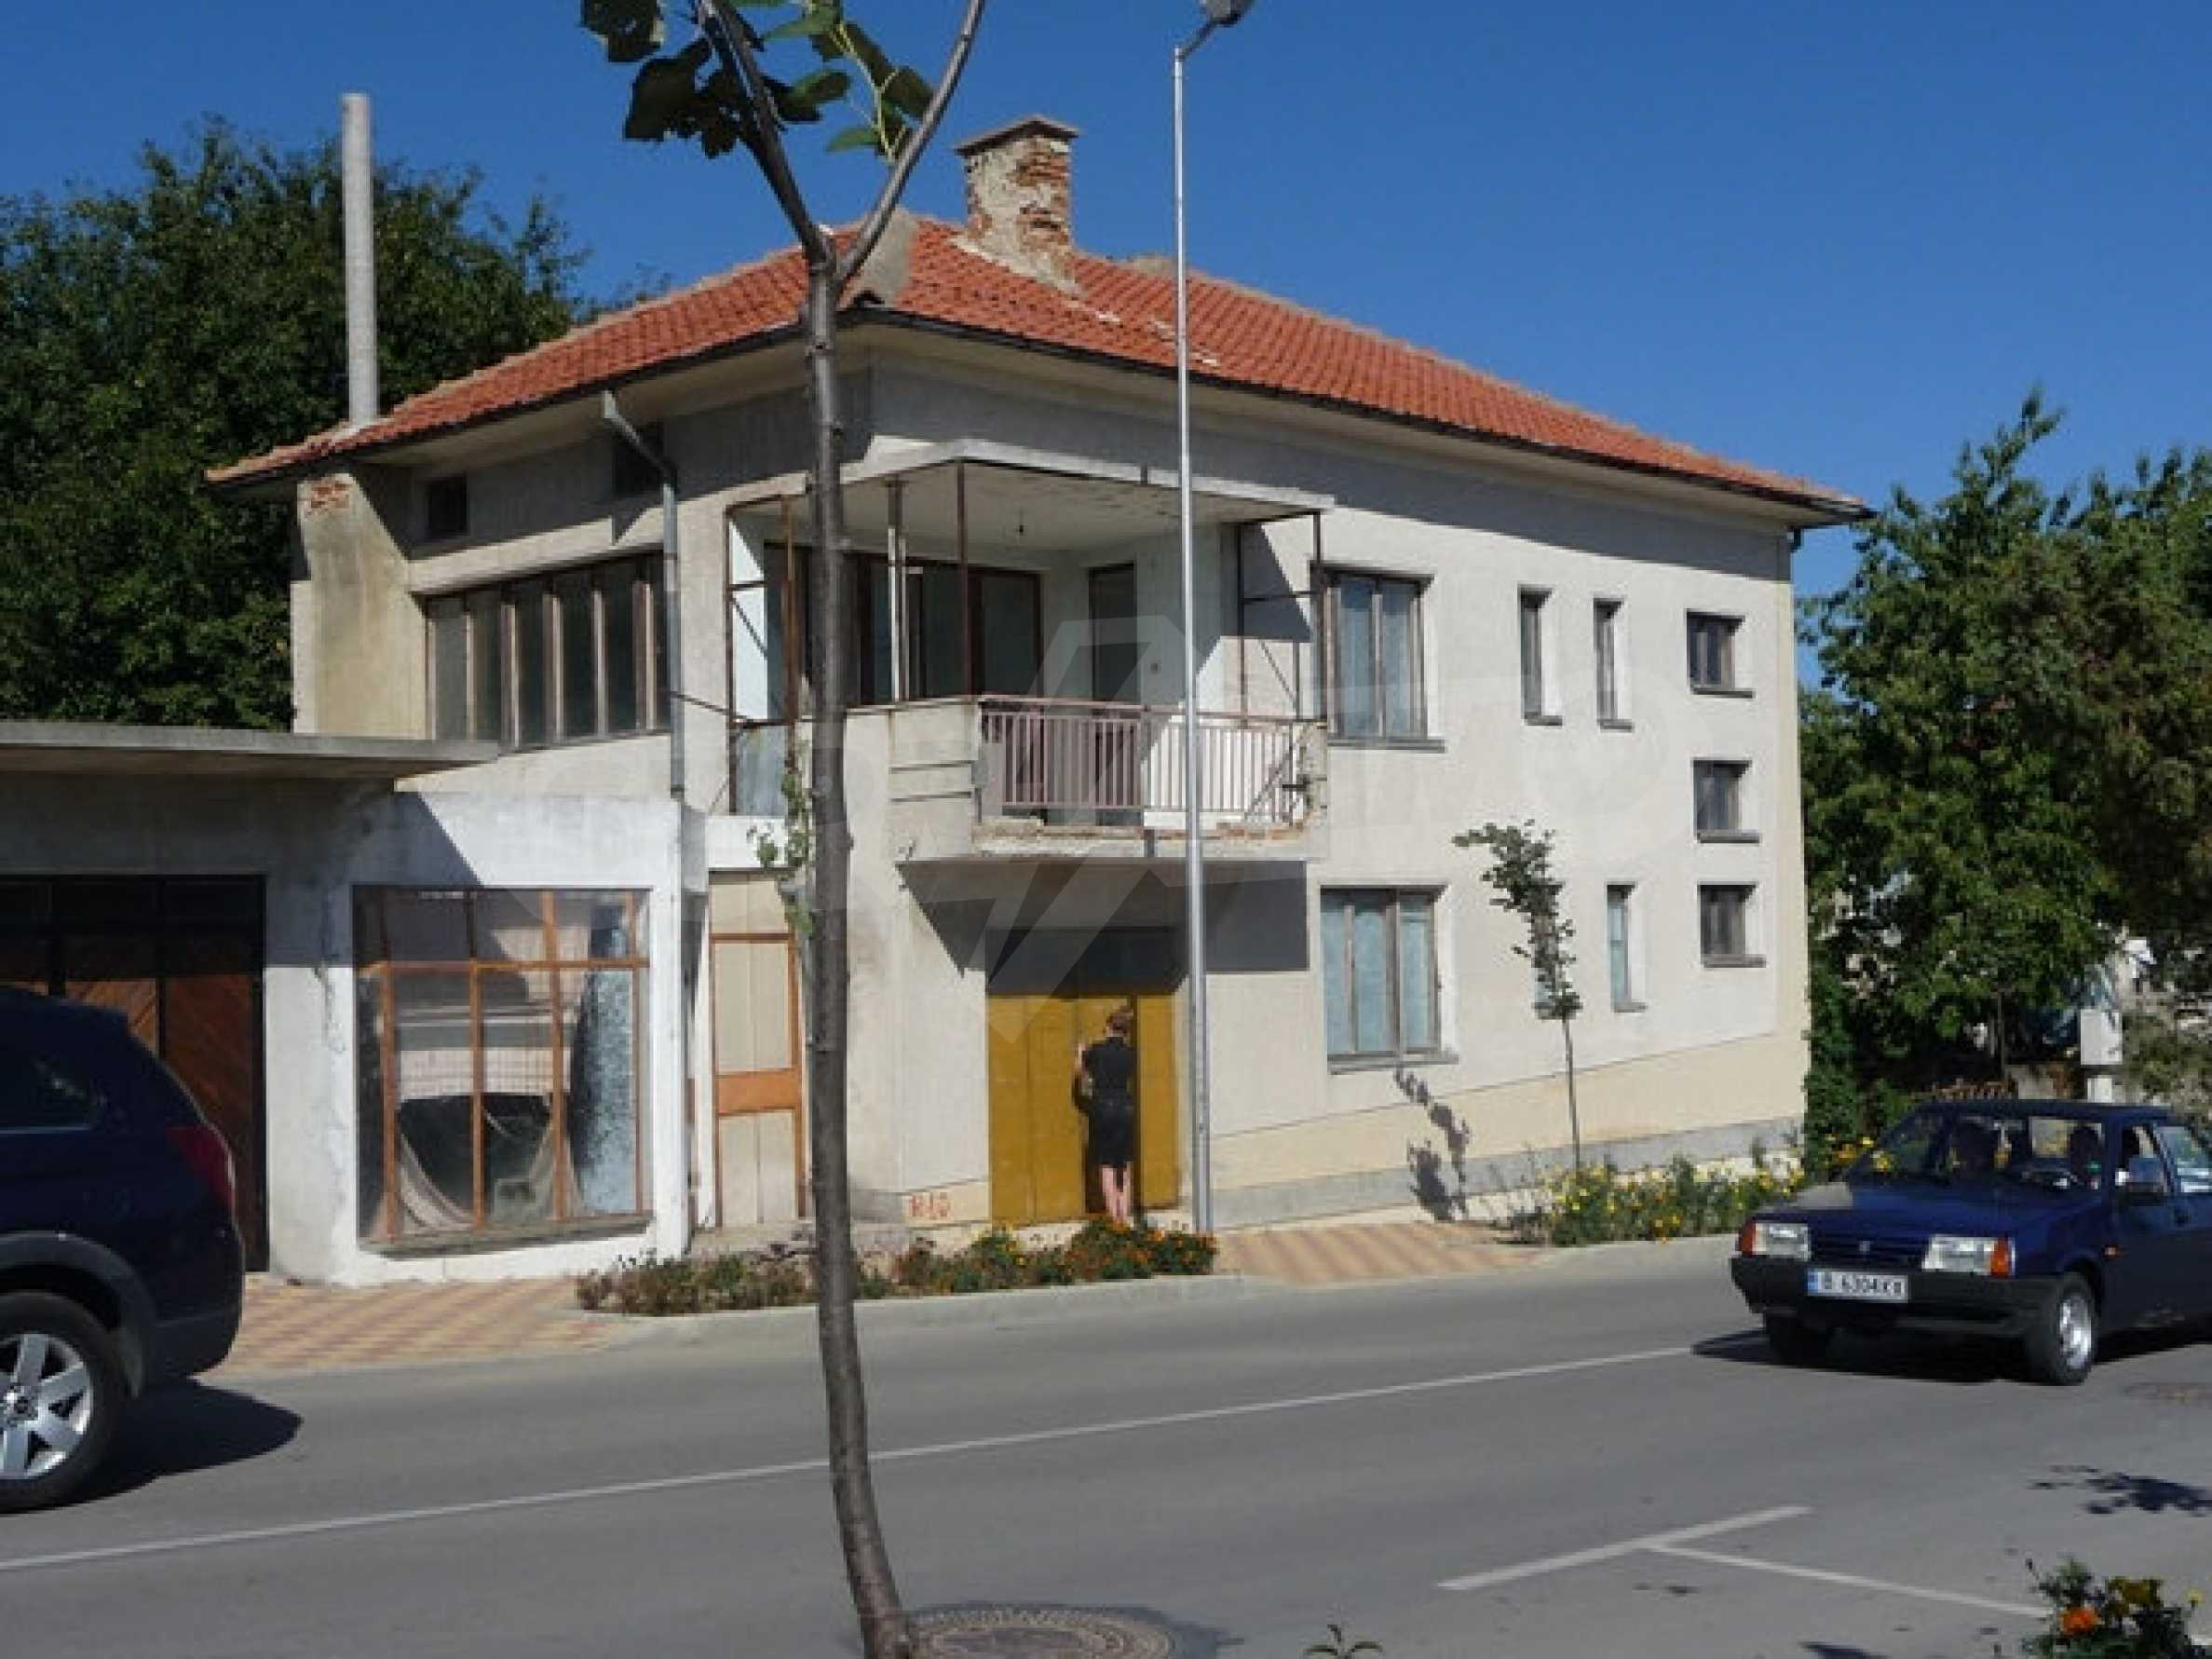 House with shop in Byala (Varna) 1